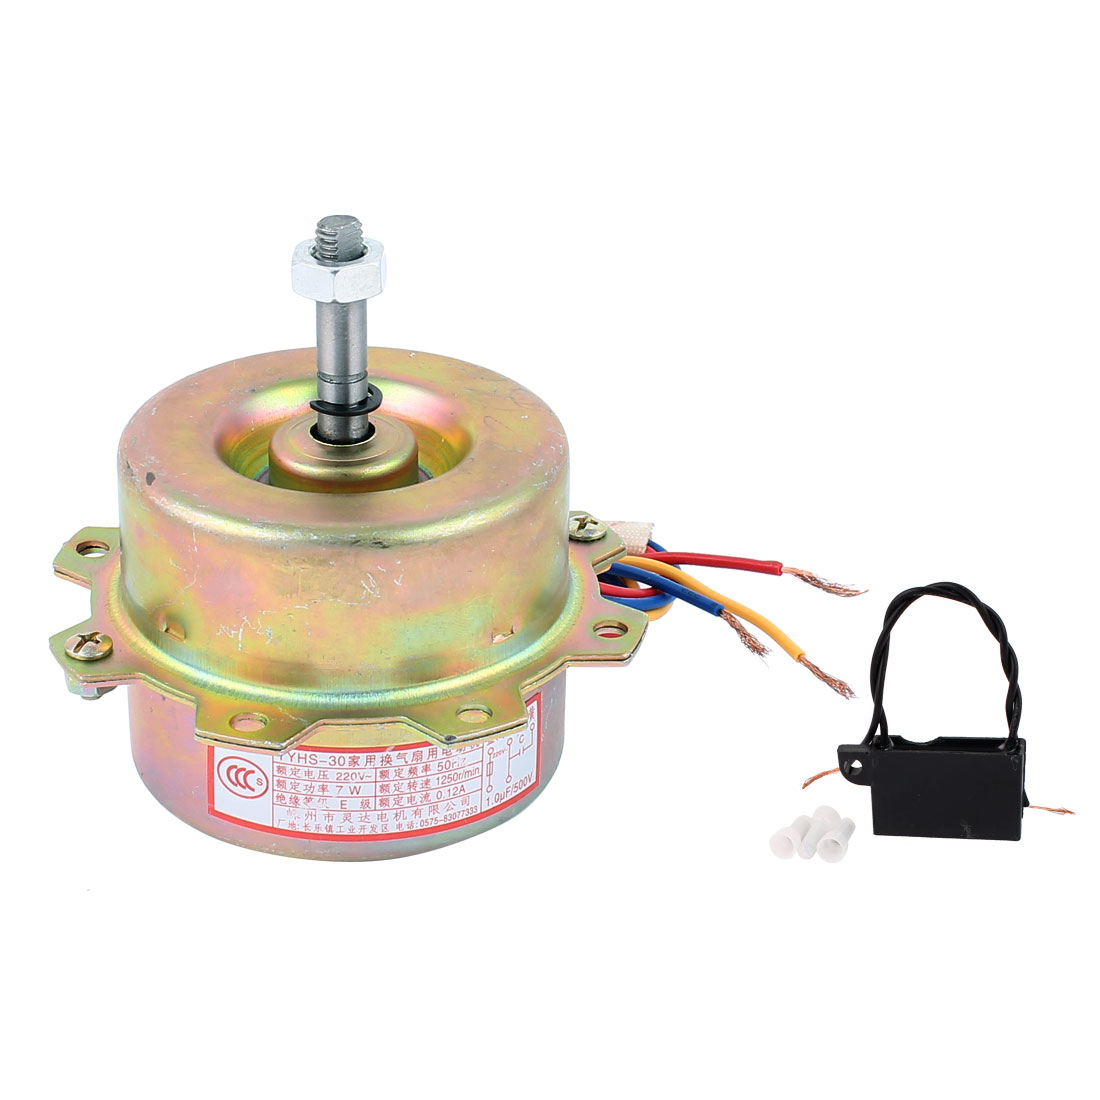 AC 220V 0.12A 7W 1250RPM 8mmx36mm Shaft Dual Bearing Ball Electric Ventilator Fan Motor